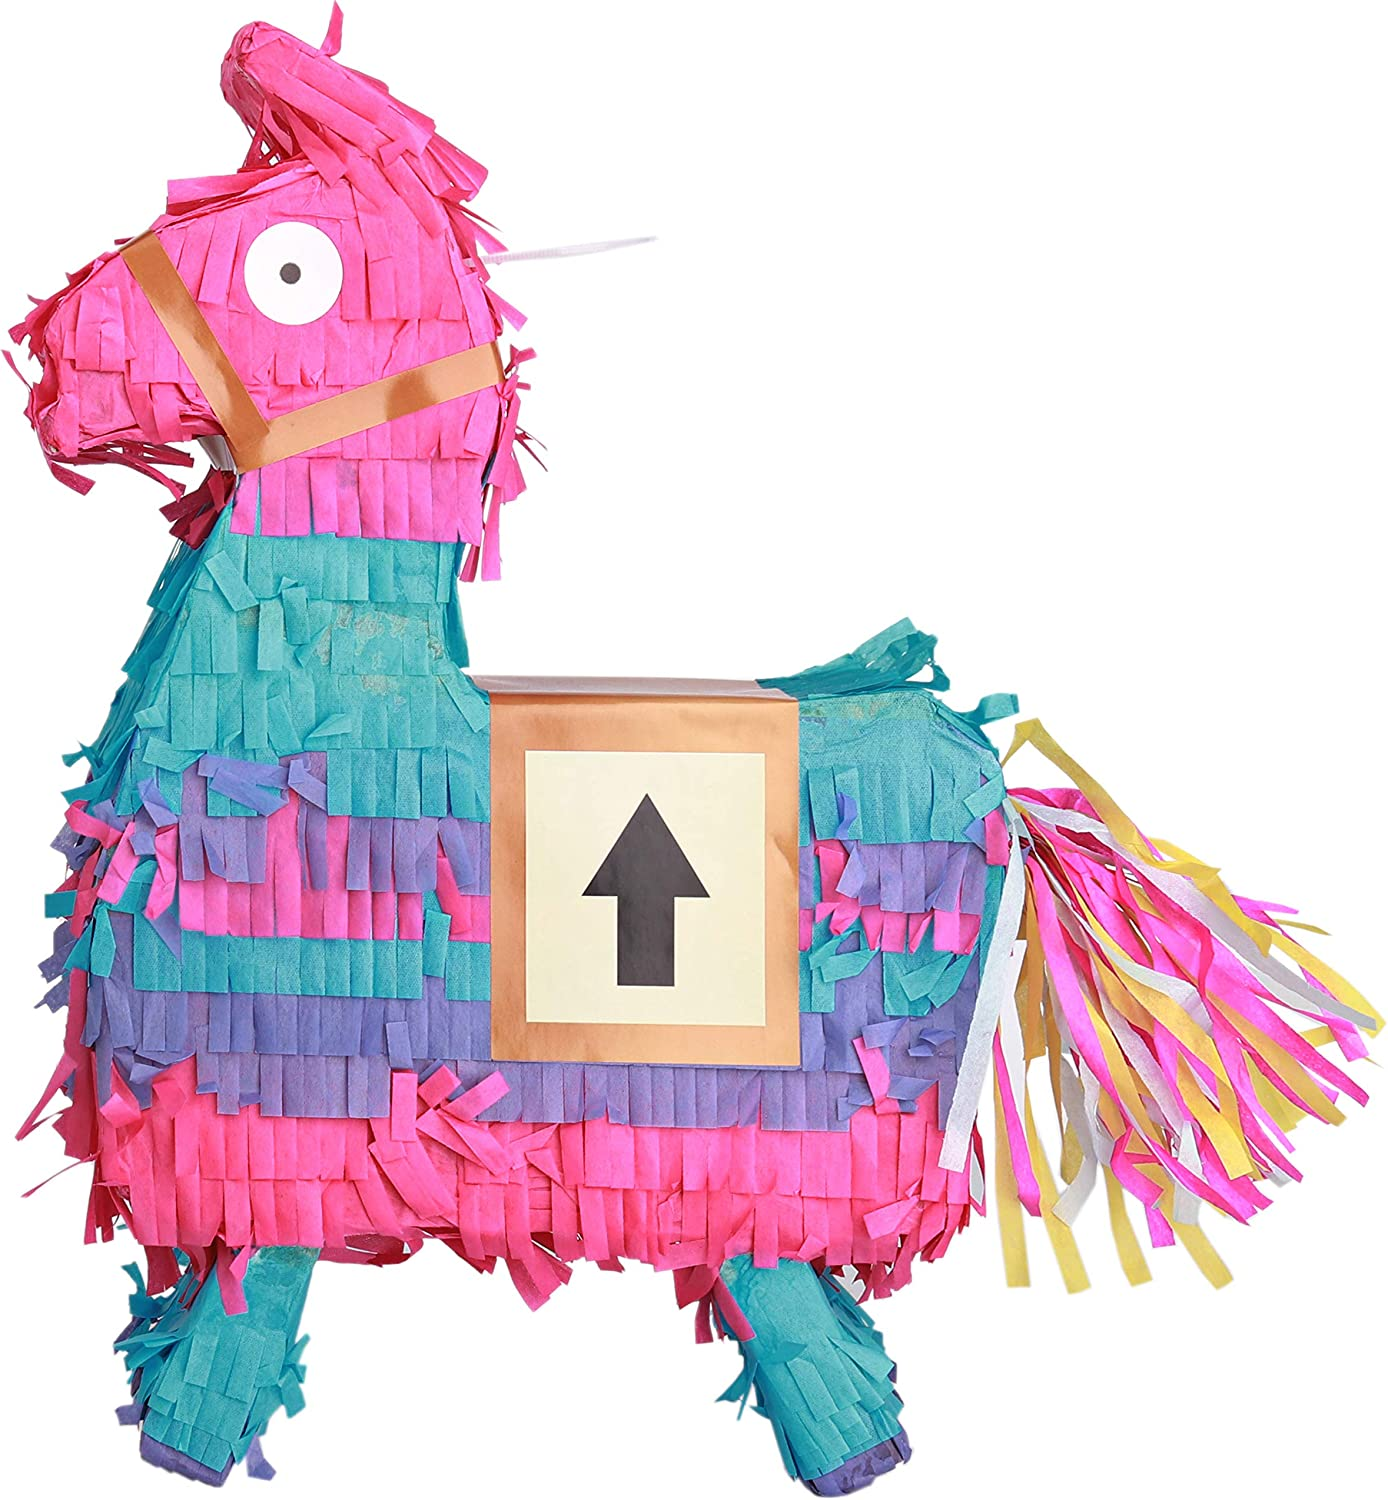 Amazon.com: Llama Loot Battle Royale Piñata Party Favors ...